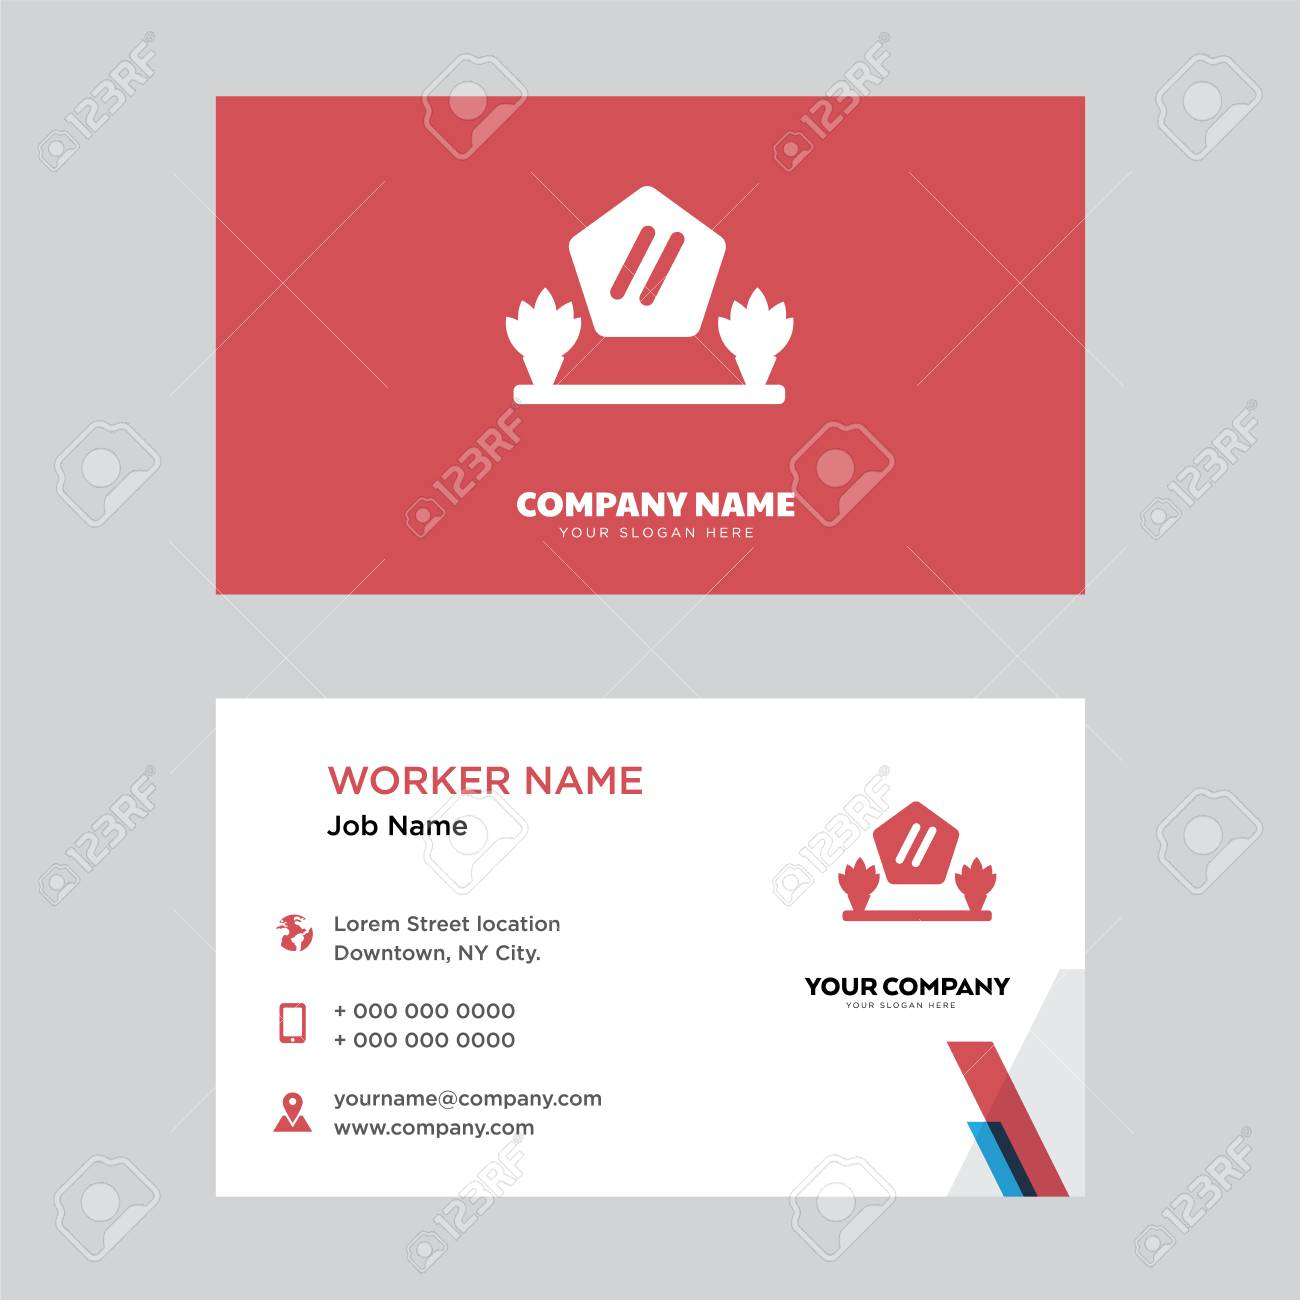 Mirror Business Card Design Template Visiting For Your Company